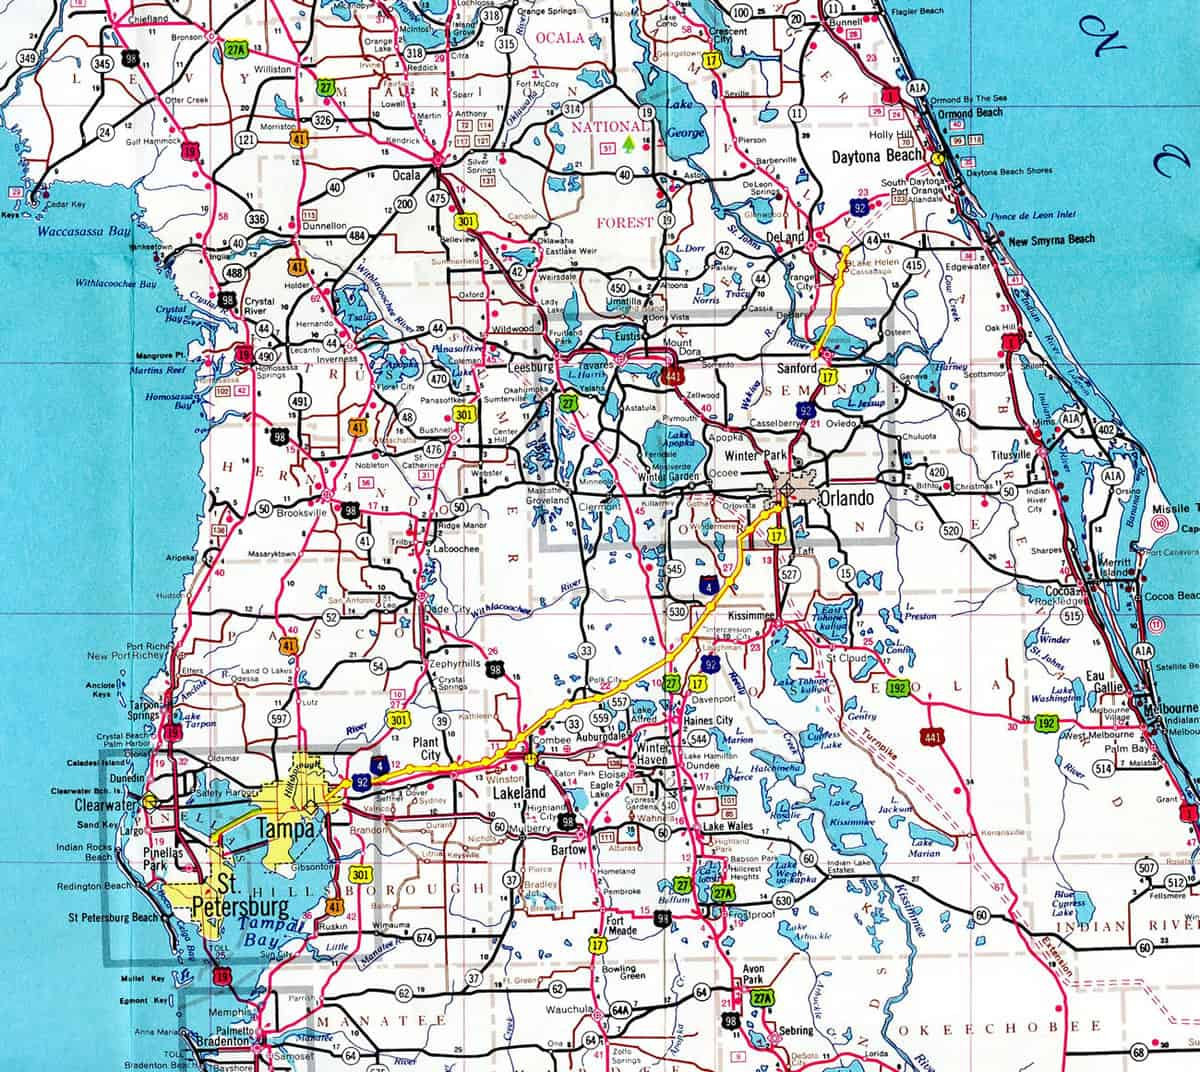 This map shows the route of I-4 from Tampa (western Florida) to Daytona Beach (Florida's East Coast).  (Map: Interstate-Guide.com)